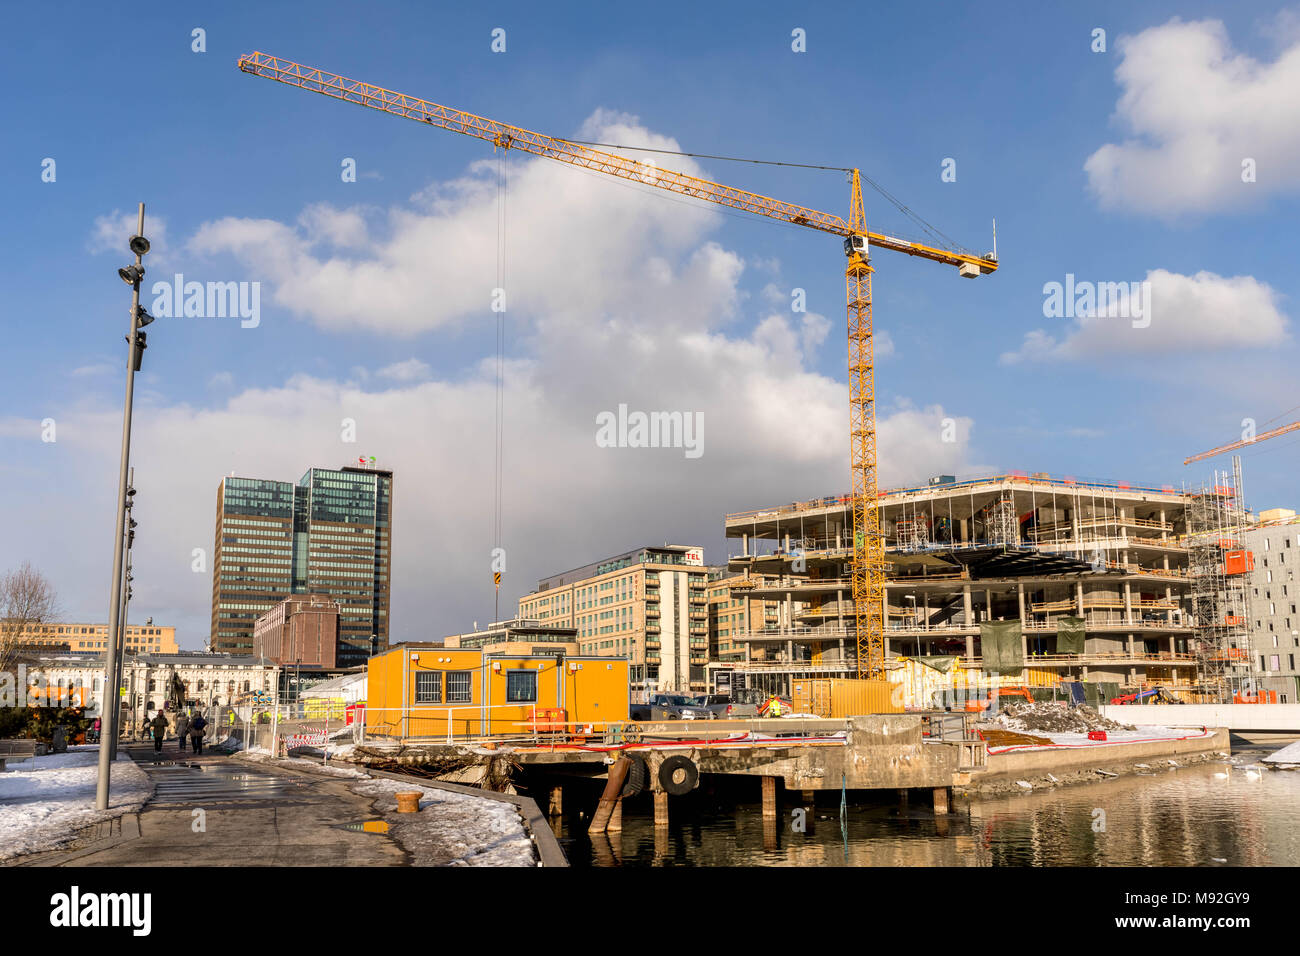 OSLO, Norway, March 2018: Building site with cranes and containers in Bjorvika in Oslo, next to the Opera House. - Stock Image